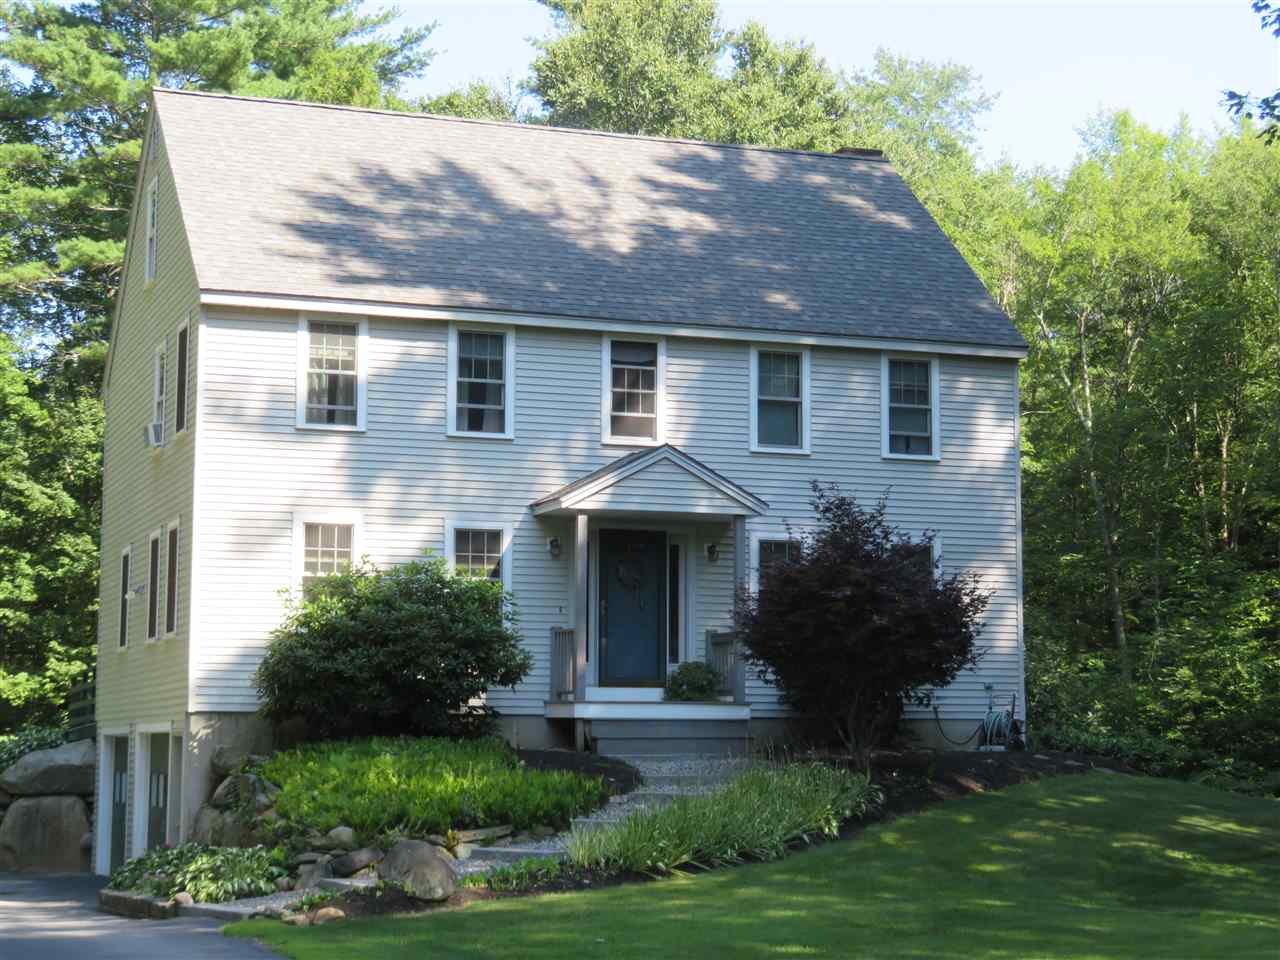 Photo of 23 Peabody Drive Brentwood NH 03833